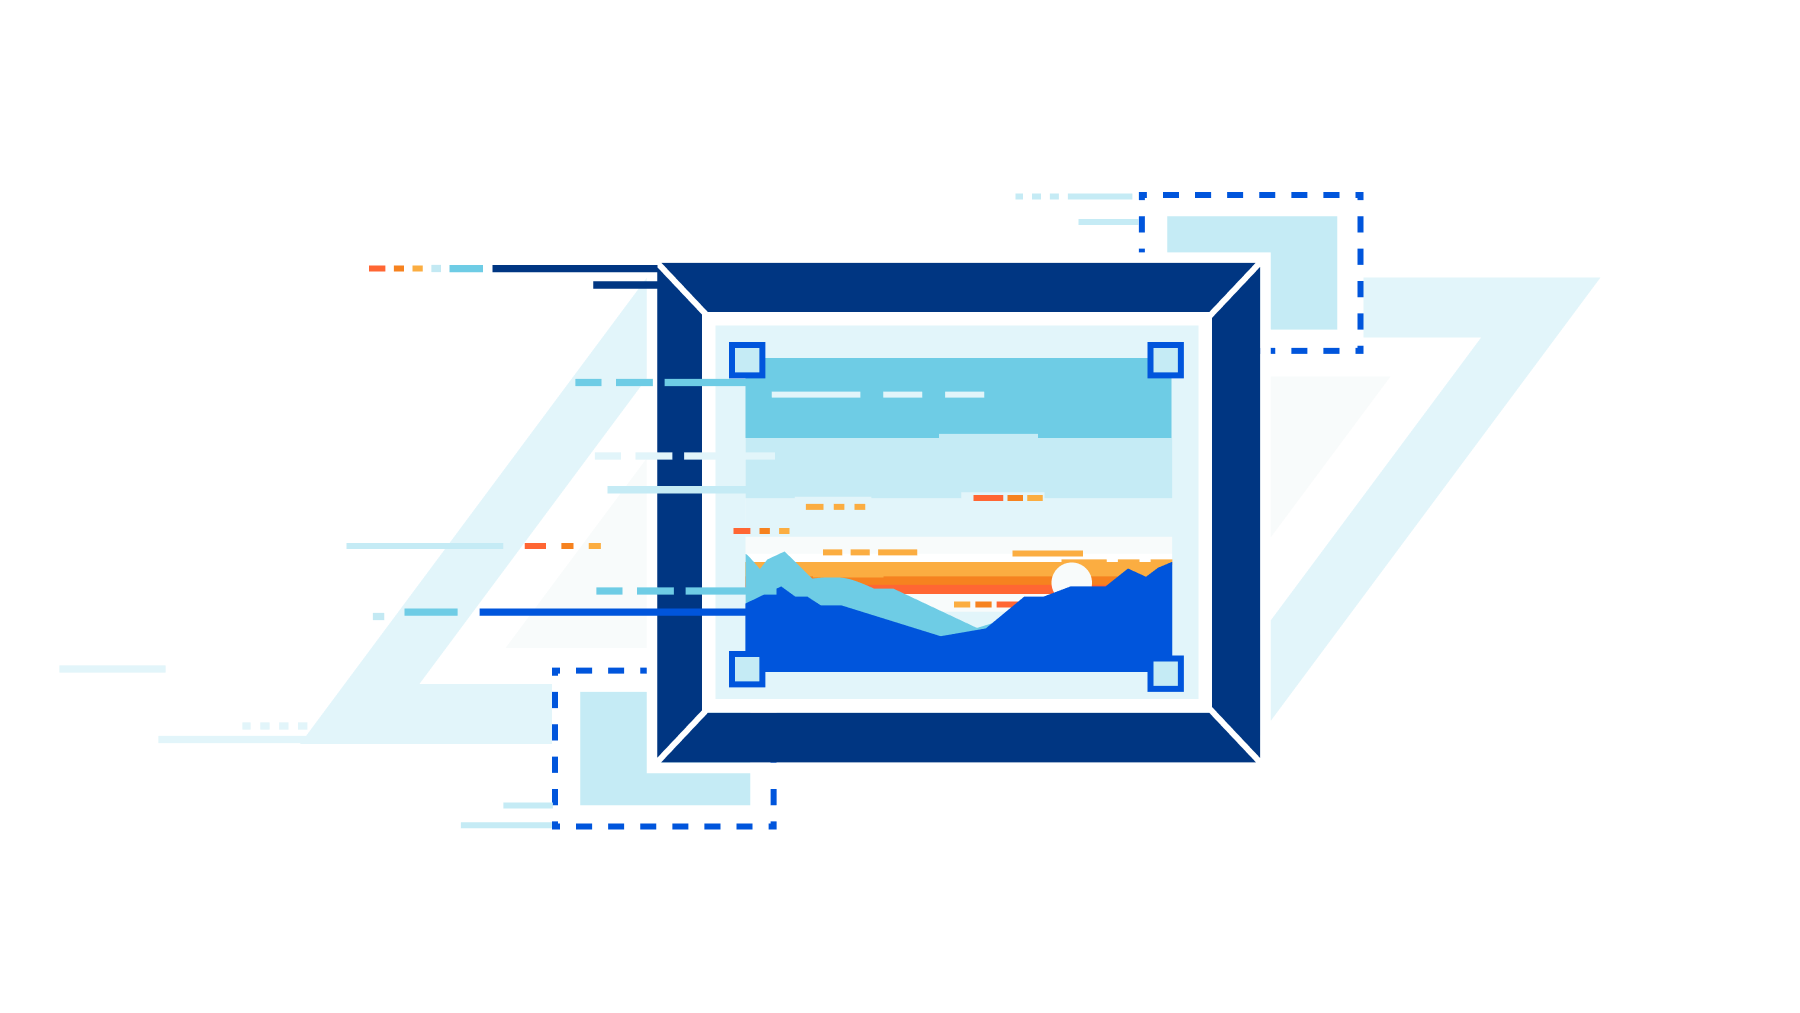 Cloudflare Images Now Available to Everyone